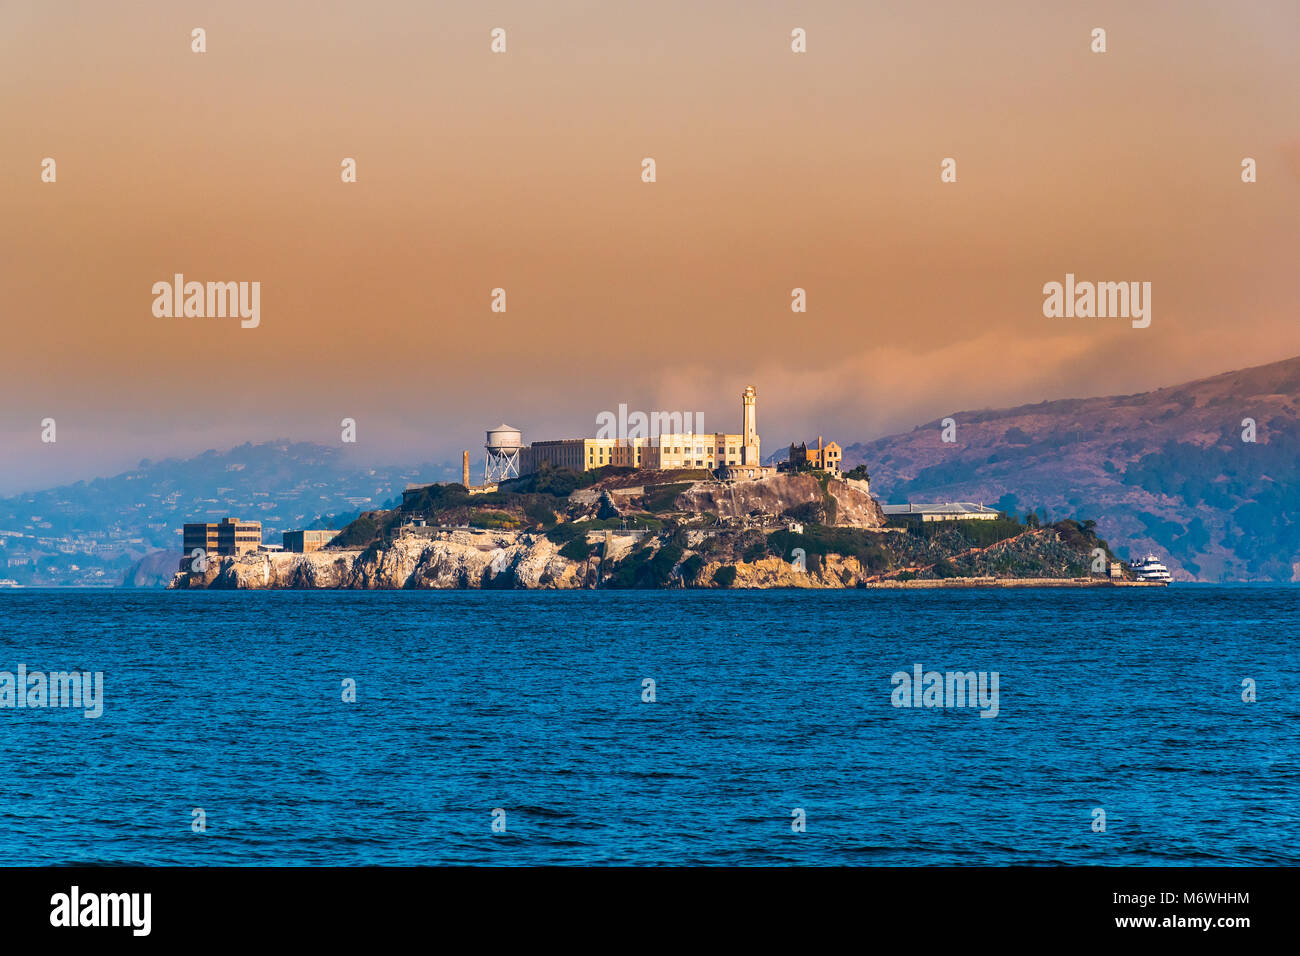 Alcatraz Island, San Francisco, California  facilities for a lighthouse, a military fortification, a military prison - Stock Image